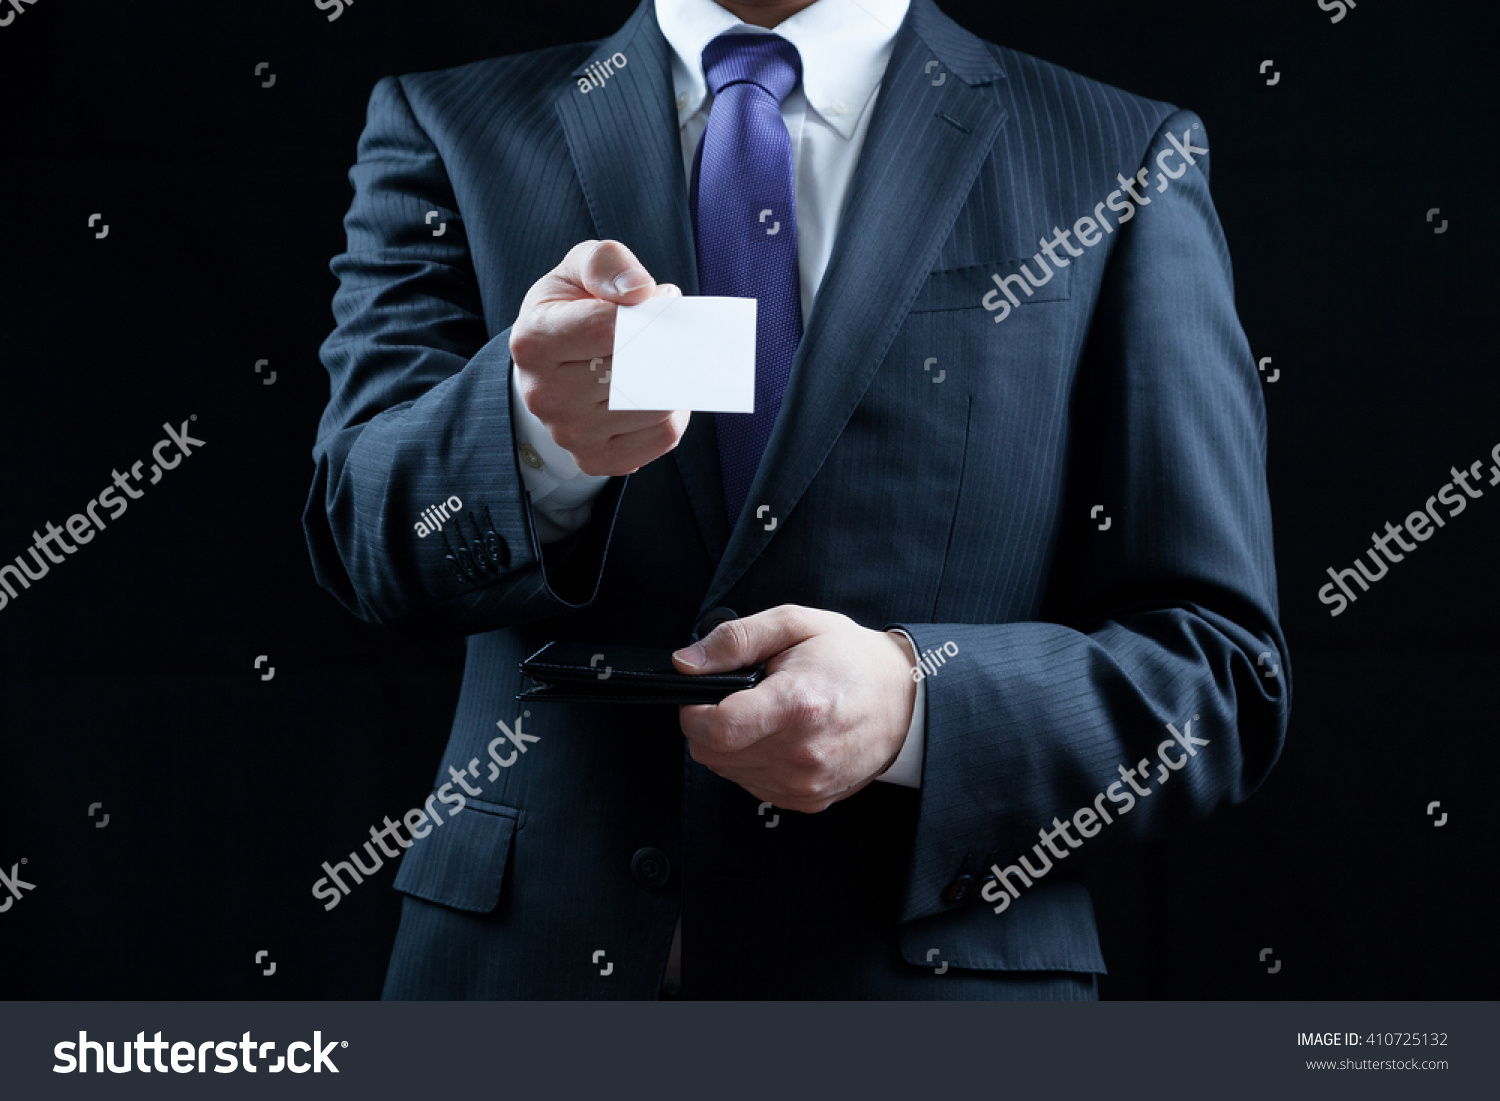 Businessman Business Cards Business Card Exchange Stock Photo ...